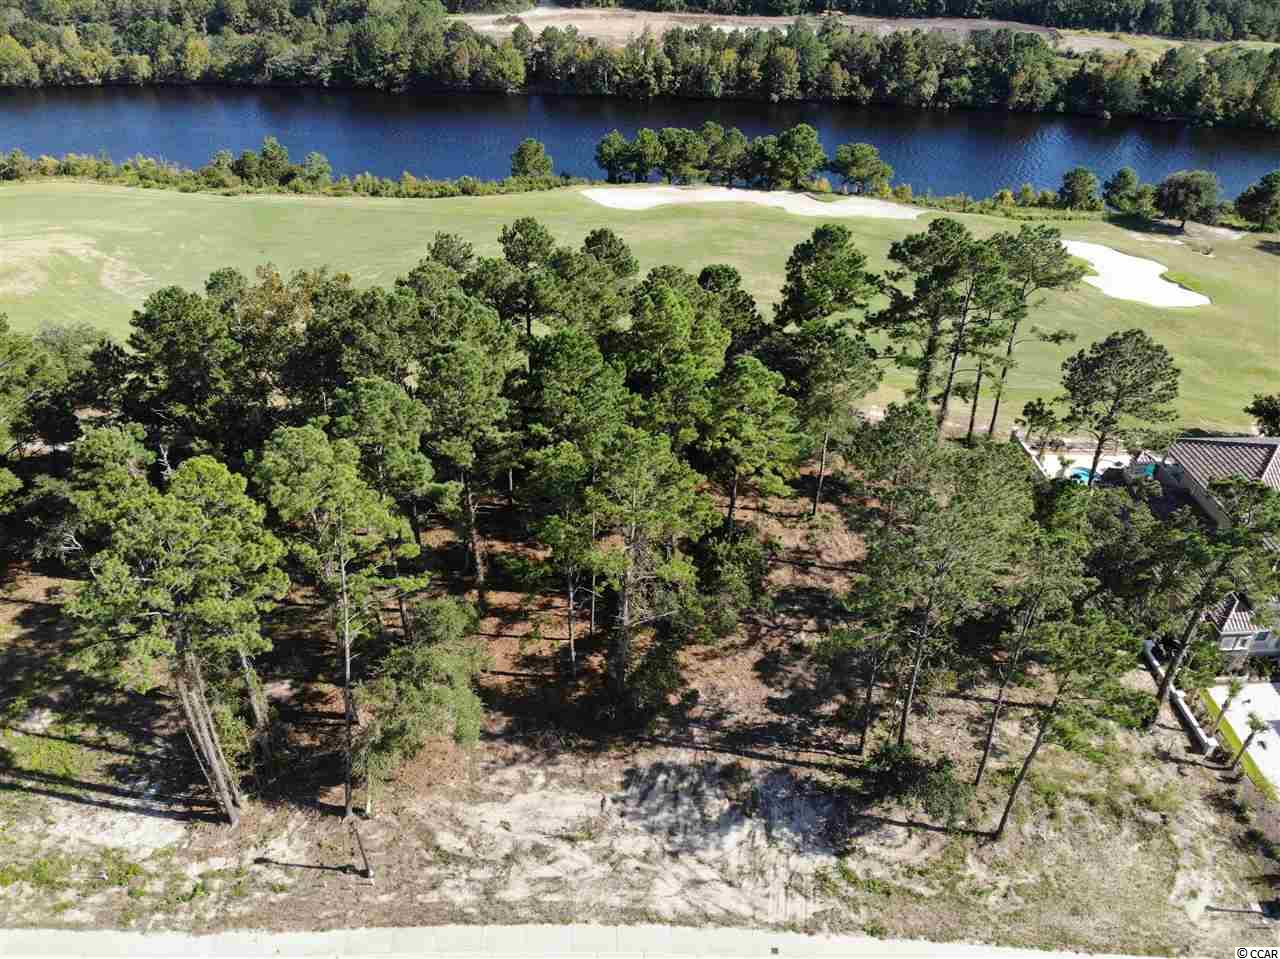 Spectacular views of the ICW and Resort Course at Grande Dunes from this high lot in Villa Venezia. Watch the boats go by and the sunrise from your backyard! One of the only properties in Grande Dunes with golf and waterway views. Don't miss out! No timeframe to build and chose your own builder. This property is located in South Carolina's premier coastal community in Myrtle Beach; Grande Dunes.  Stretching from the Ocean to the Carolina Bays Preserve, this 2200 acre development is amenity-rich and filled with lifestyle opportunities unrivaled in the market.  Owners at Grande Dunes enjoy a 25,000 square foot Ocean Club that boasts exquisite dining, oceanfront pools with food & beverage service, along with meeting rooms and fun activities.  Additionally, the community has two 18-hole golf courses along with several on-site restaurants, deep water marina, Har-tru tennis facility and miles or biking/walking trails!  Please visit our sales gallery located in Grande Dunes Marketplace next to Lowes Foods to learn more about this amazing community you can call home.